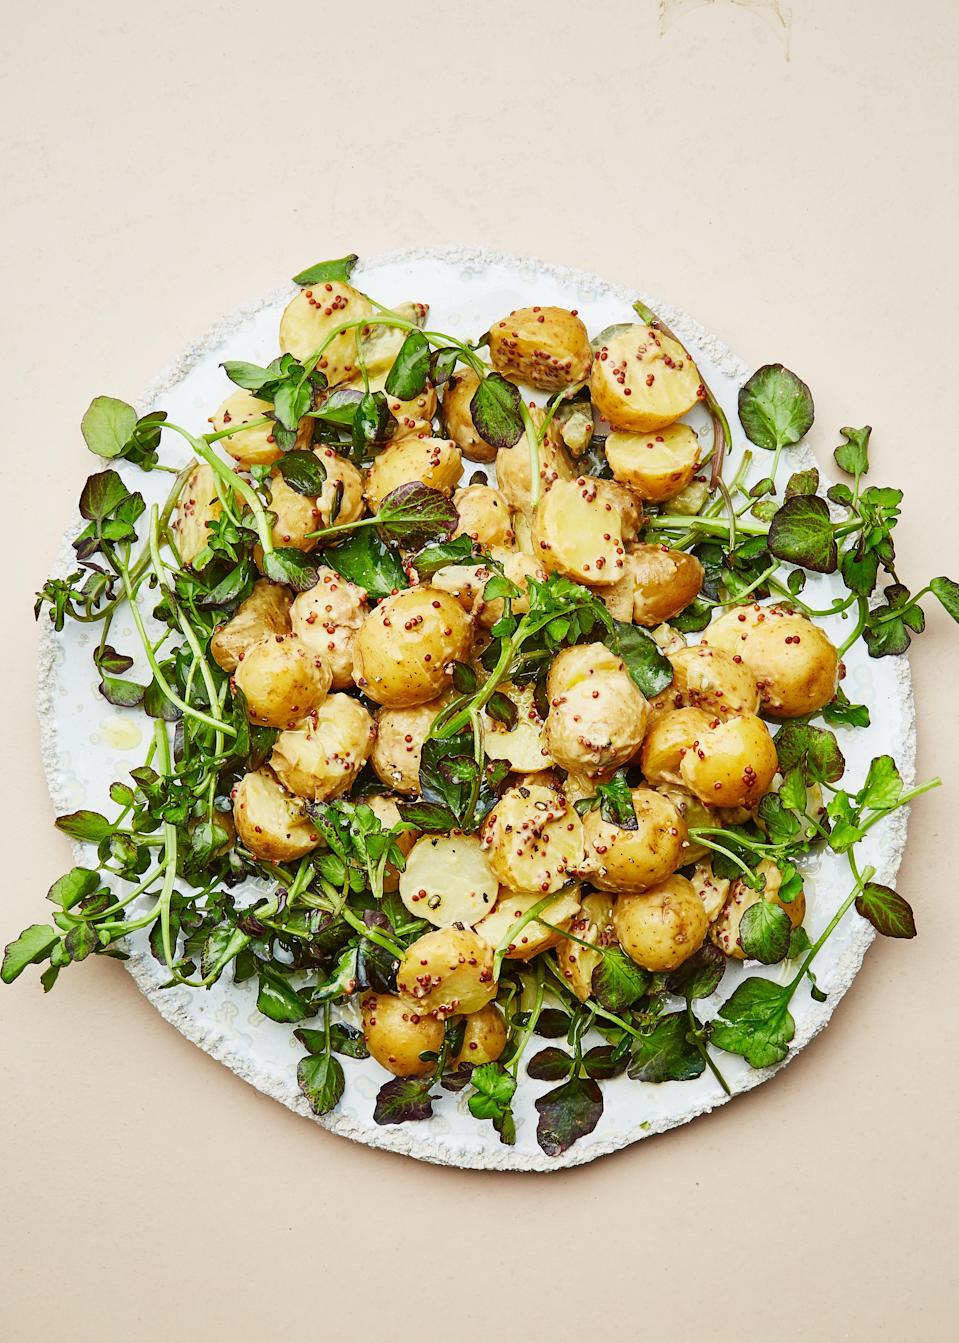 "Peewee Dutch Yellow Potatoes are the perfect tiny potato for this recipe, but if you can't find them, just use the smallest fingerling or Yukon Gold potatoes you can buy. <a href=""https://www.bonappetit.com/recipe/potato-salad-with-mustard-sauce?mbid=synd_yahoo_rss"" rel=""nofollow noopener"" target=""_blank"" data-ylk=""slk:See recipe."" class=""link rapid-noclick-resp"">See recipe.</a>"